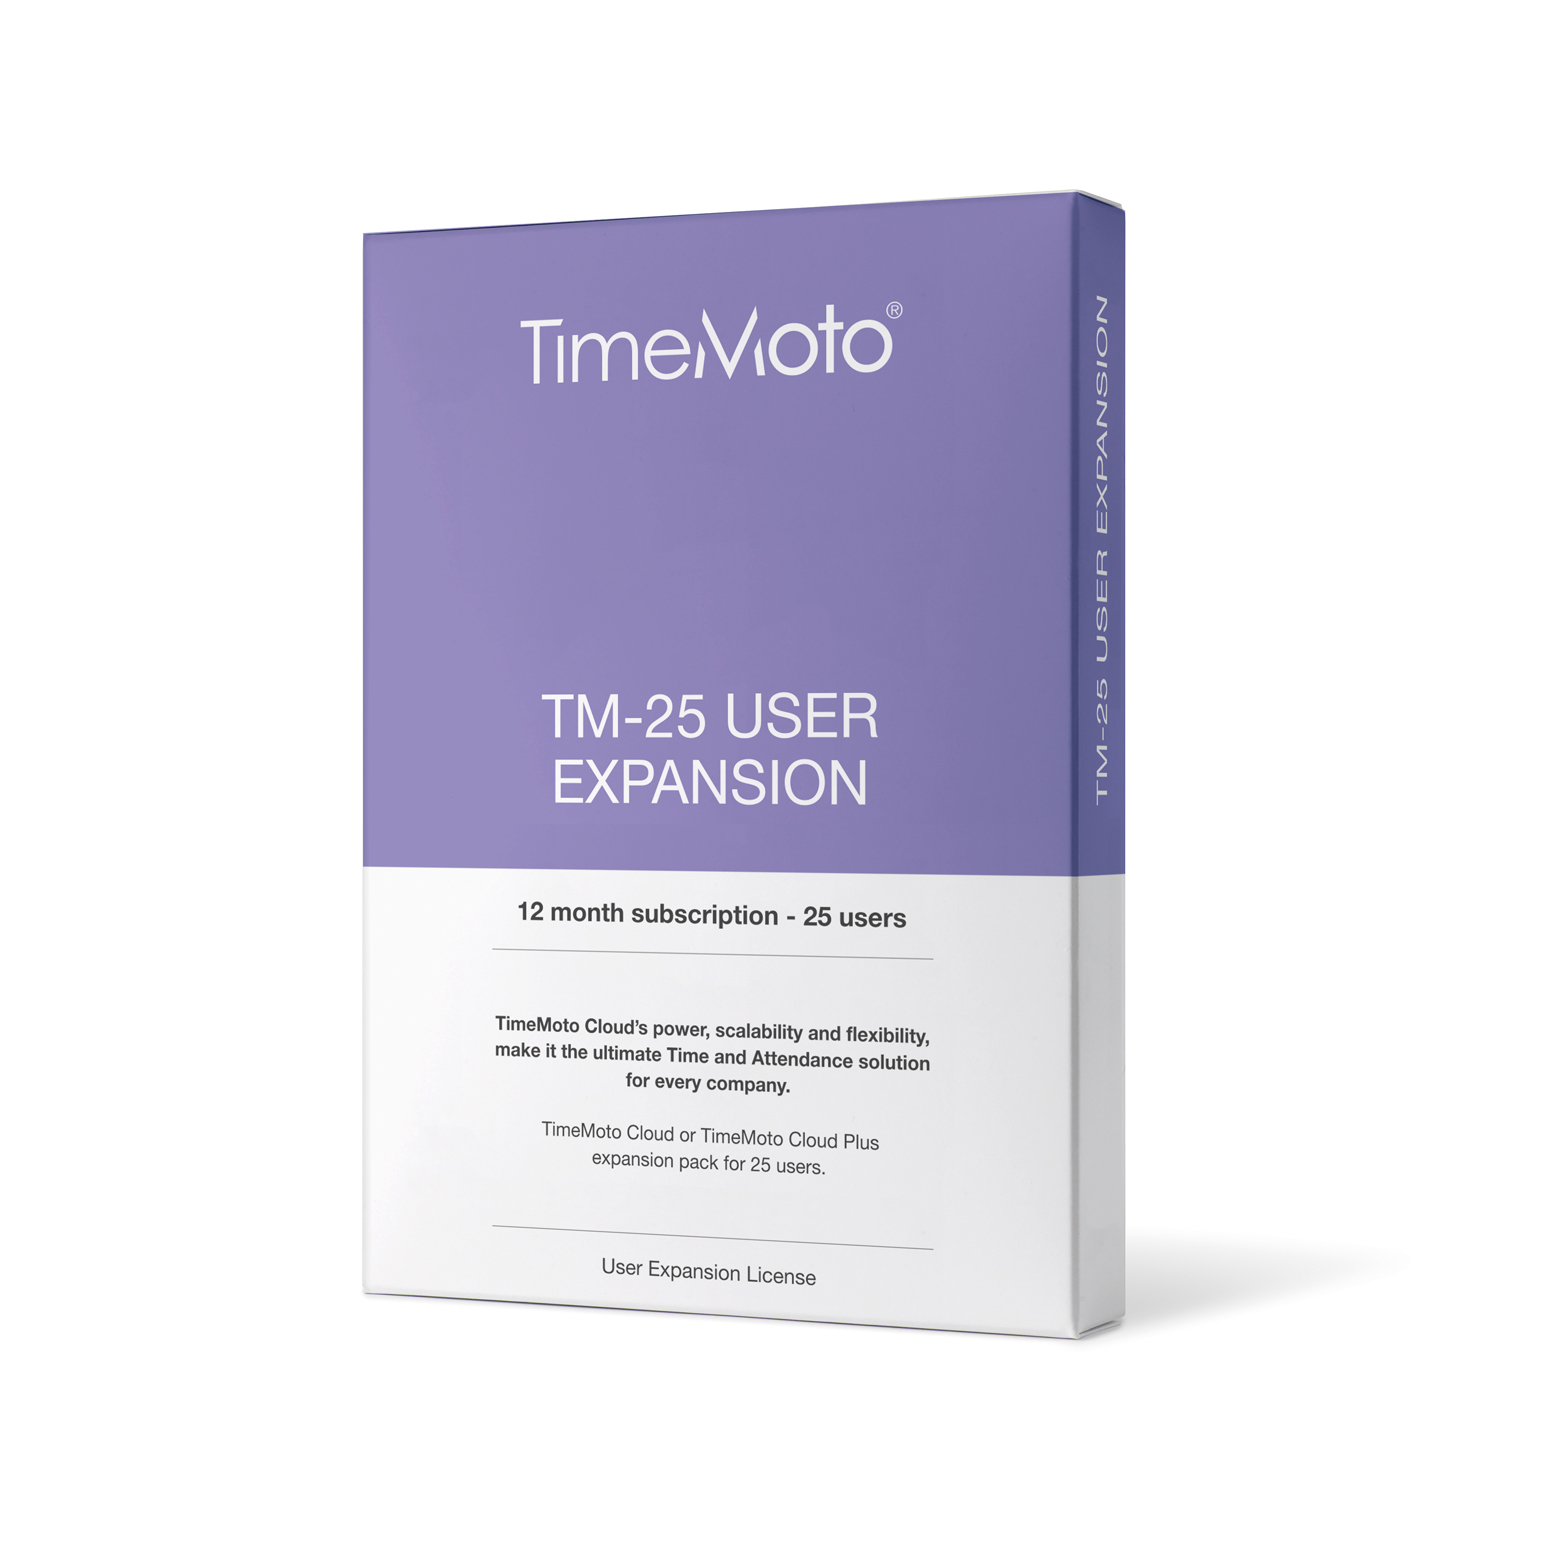 Attendance Machines TimeMoto by Safescan TM-25 Cloud User Expansion 25 Users Ref 139-0592